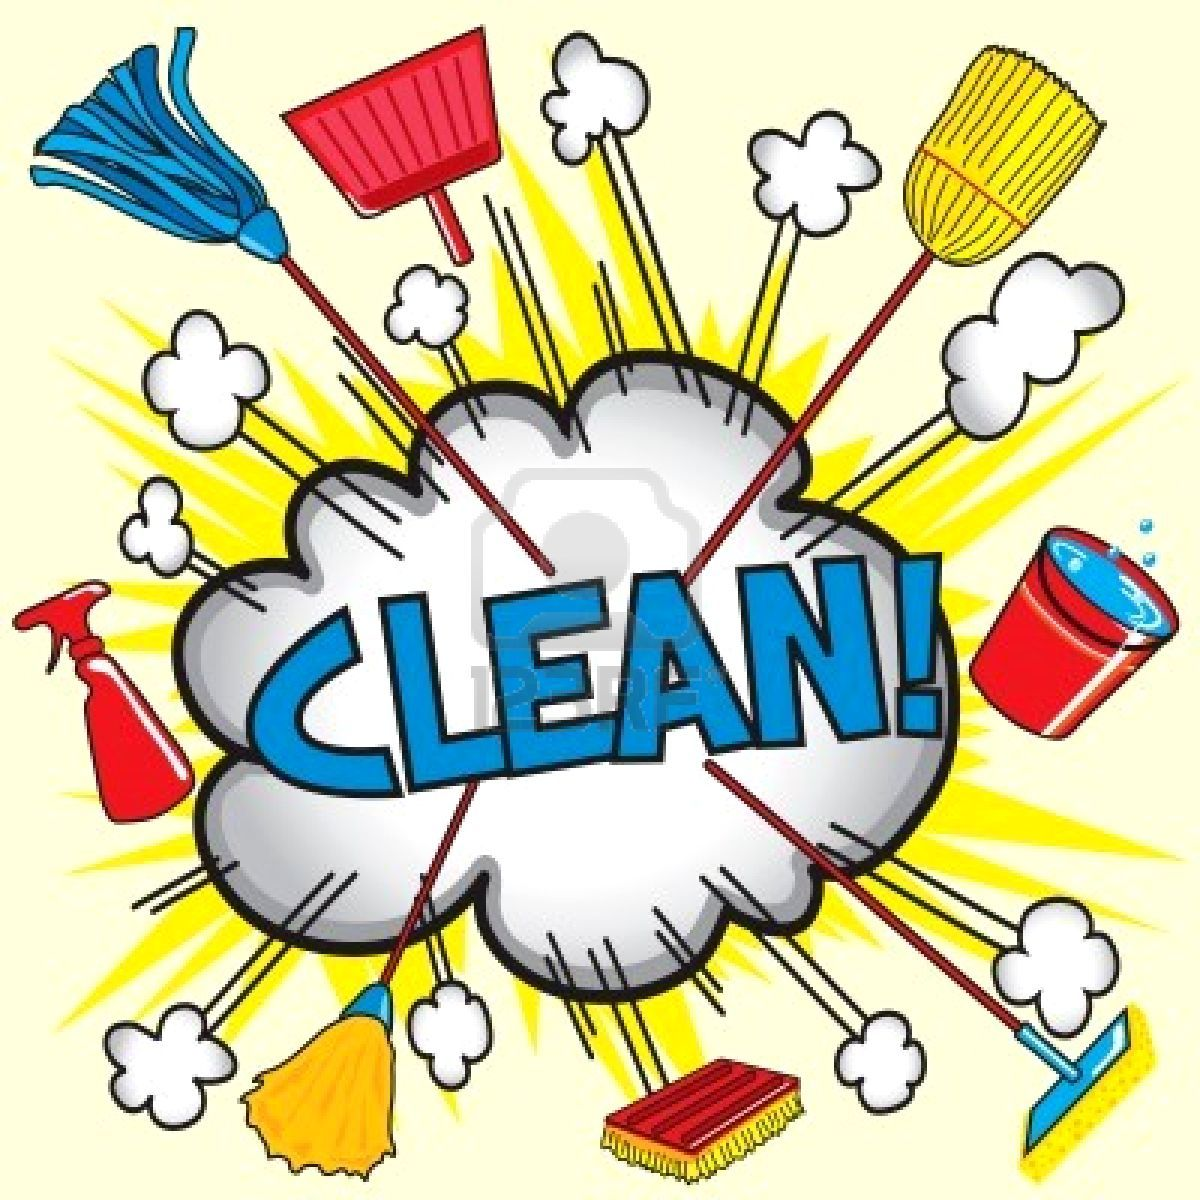 house cleaning clipart at getdrawings com free for personal use rh getdrawings com house cleaning clip art free clipart house cleaning